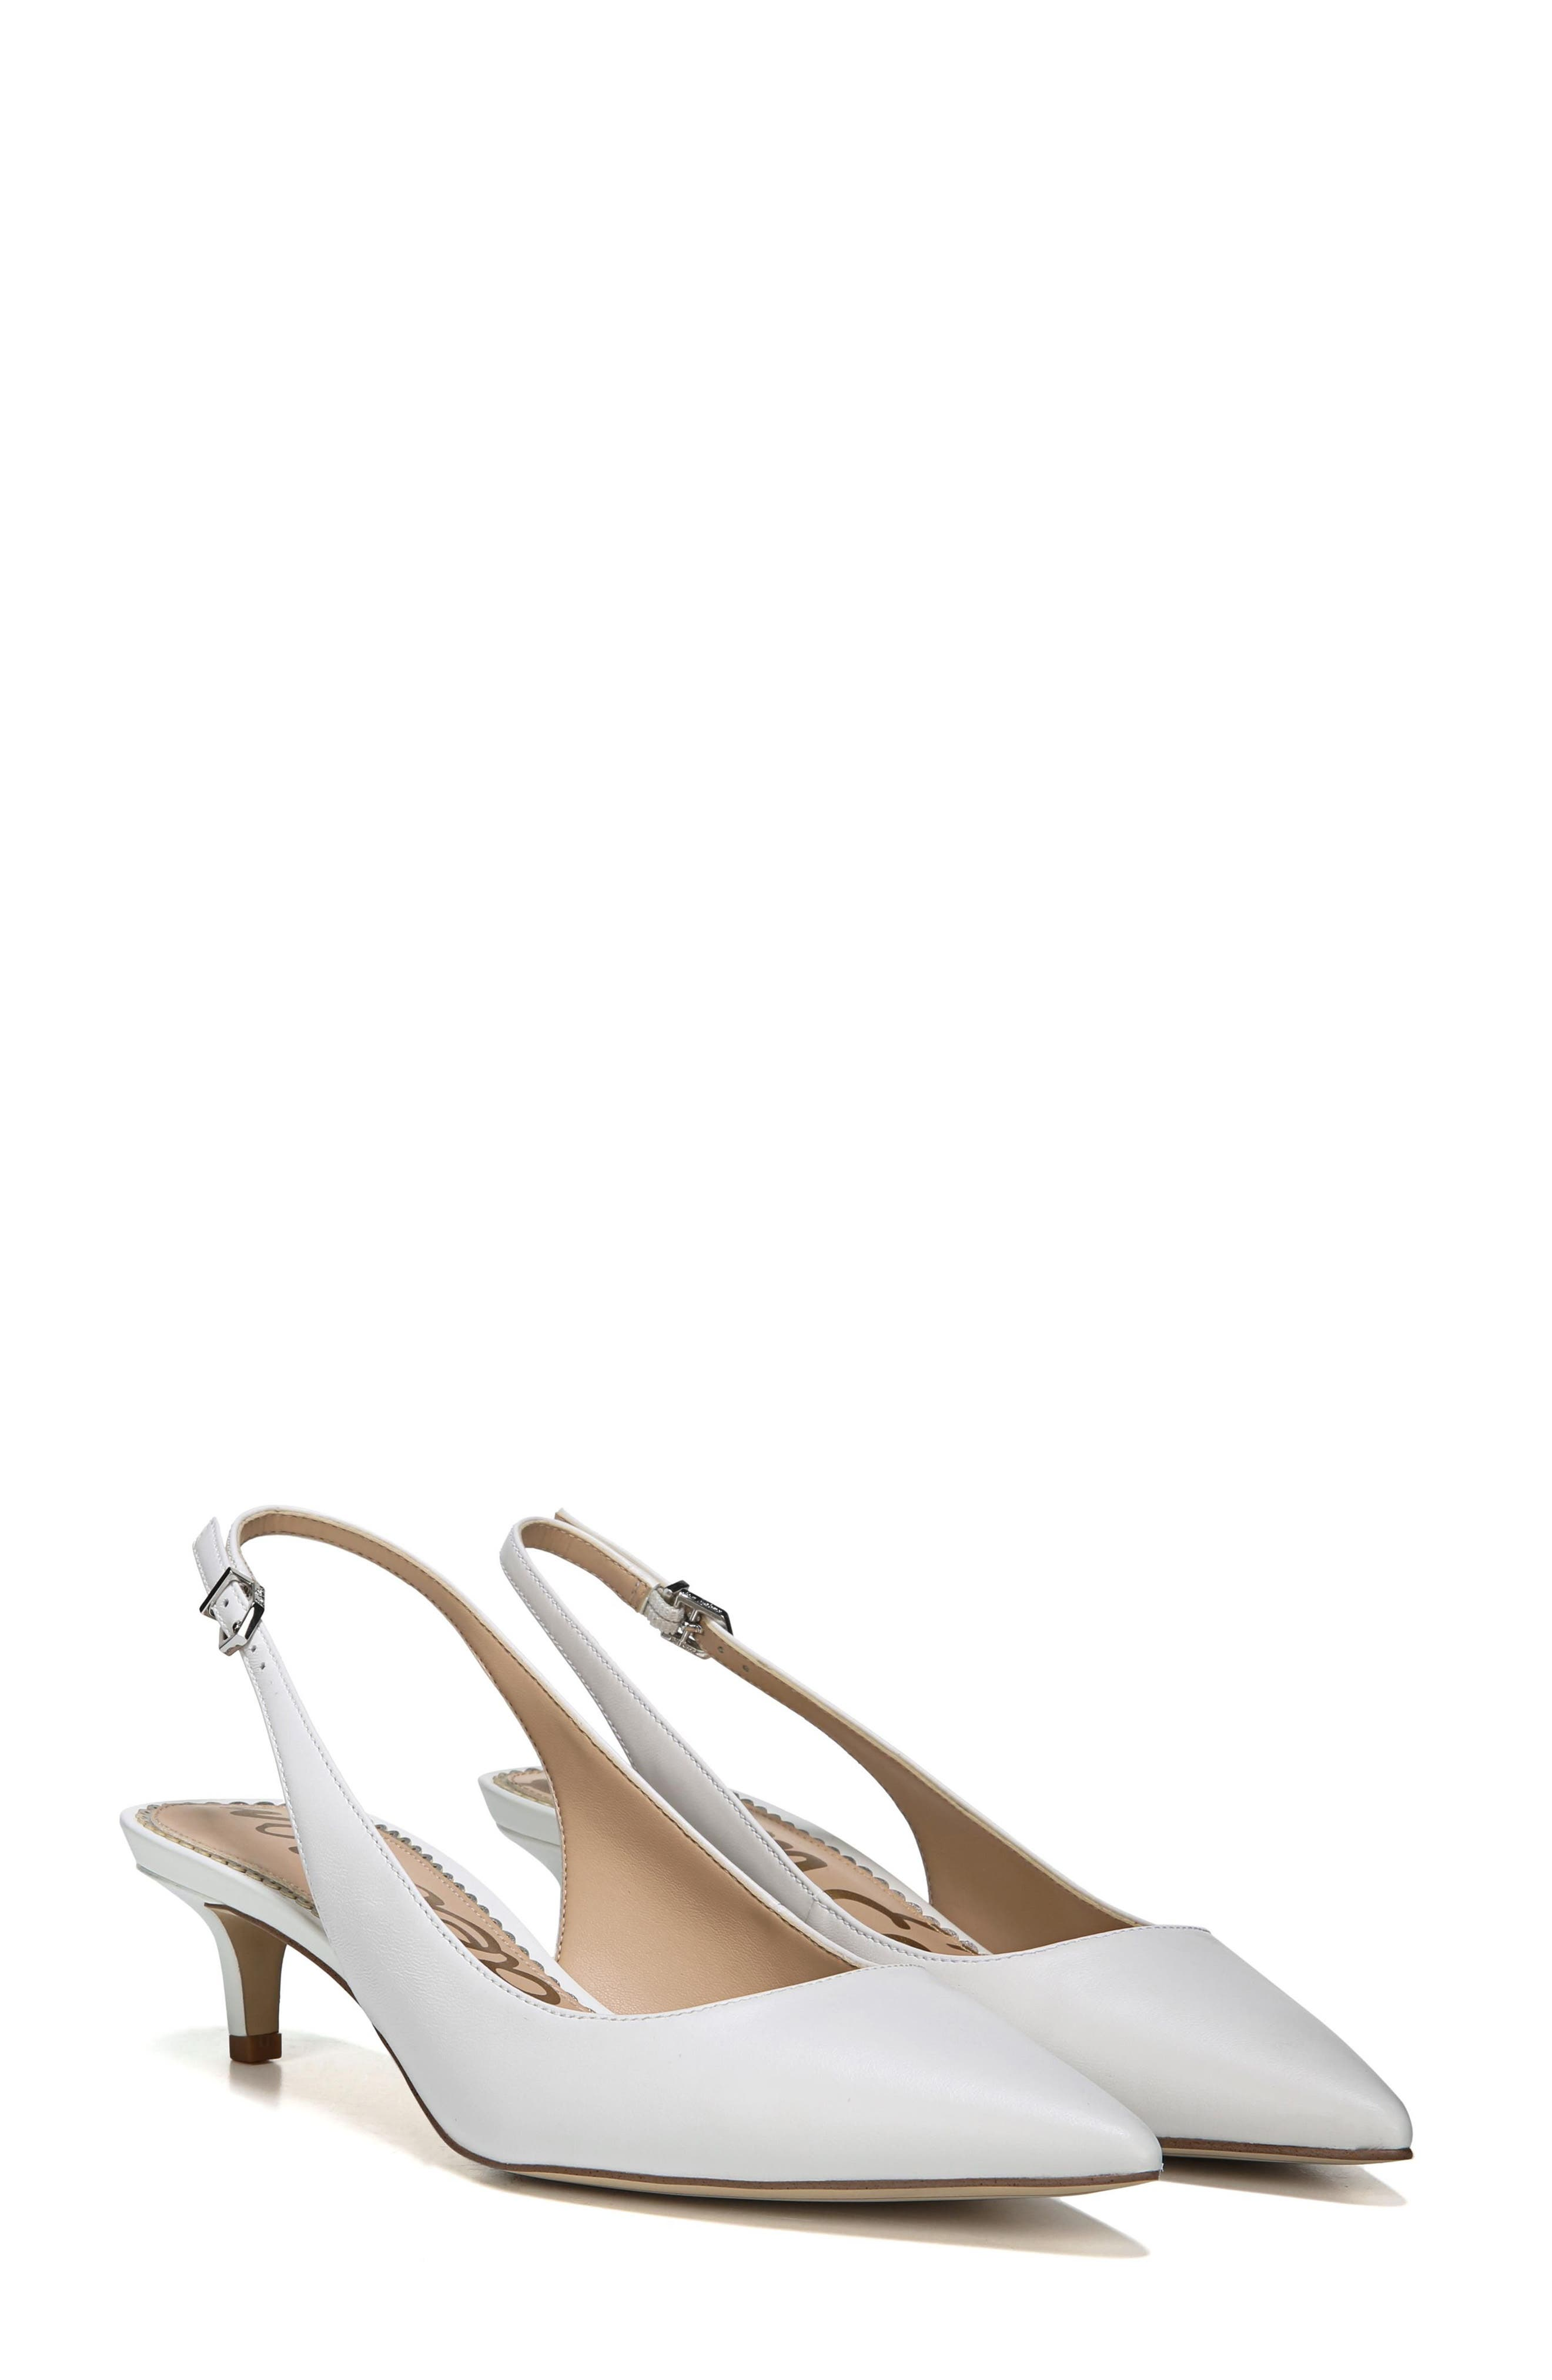 Ludlow Slingback Pump,                         Main,                         color, BRIGHT WHITE LEATHER